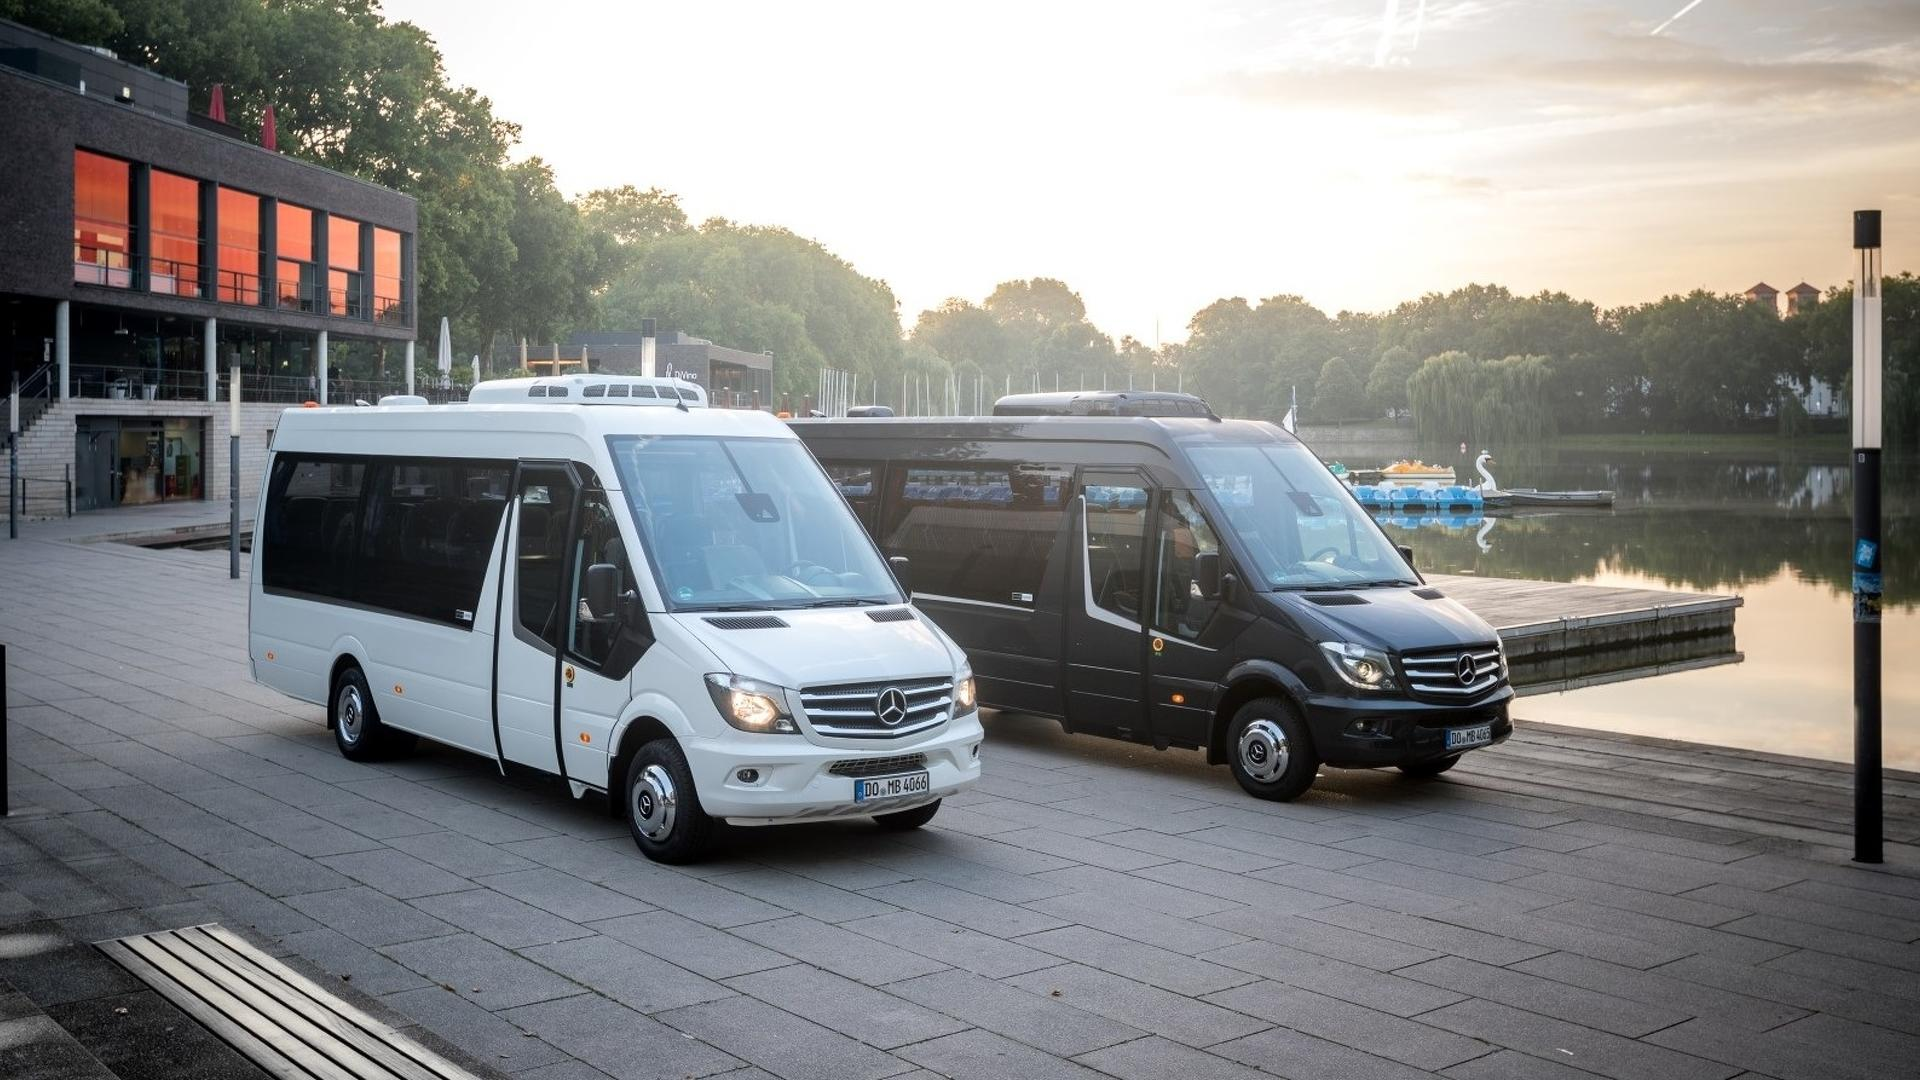 The minibuses based on the mercedes benz sprinter 2018 also gets to - The Minibuses Based On The Mercedes Benz Sprinter 2018 Also Gets To 39